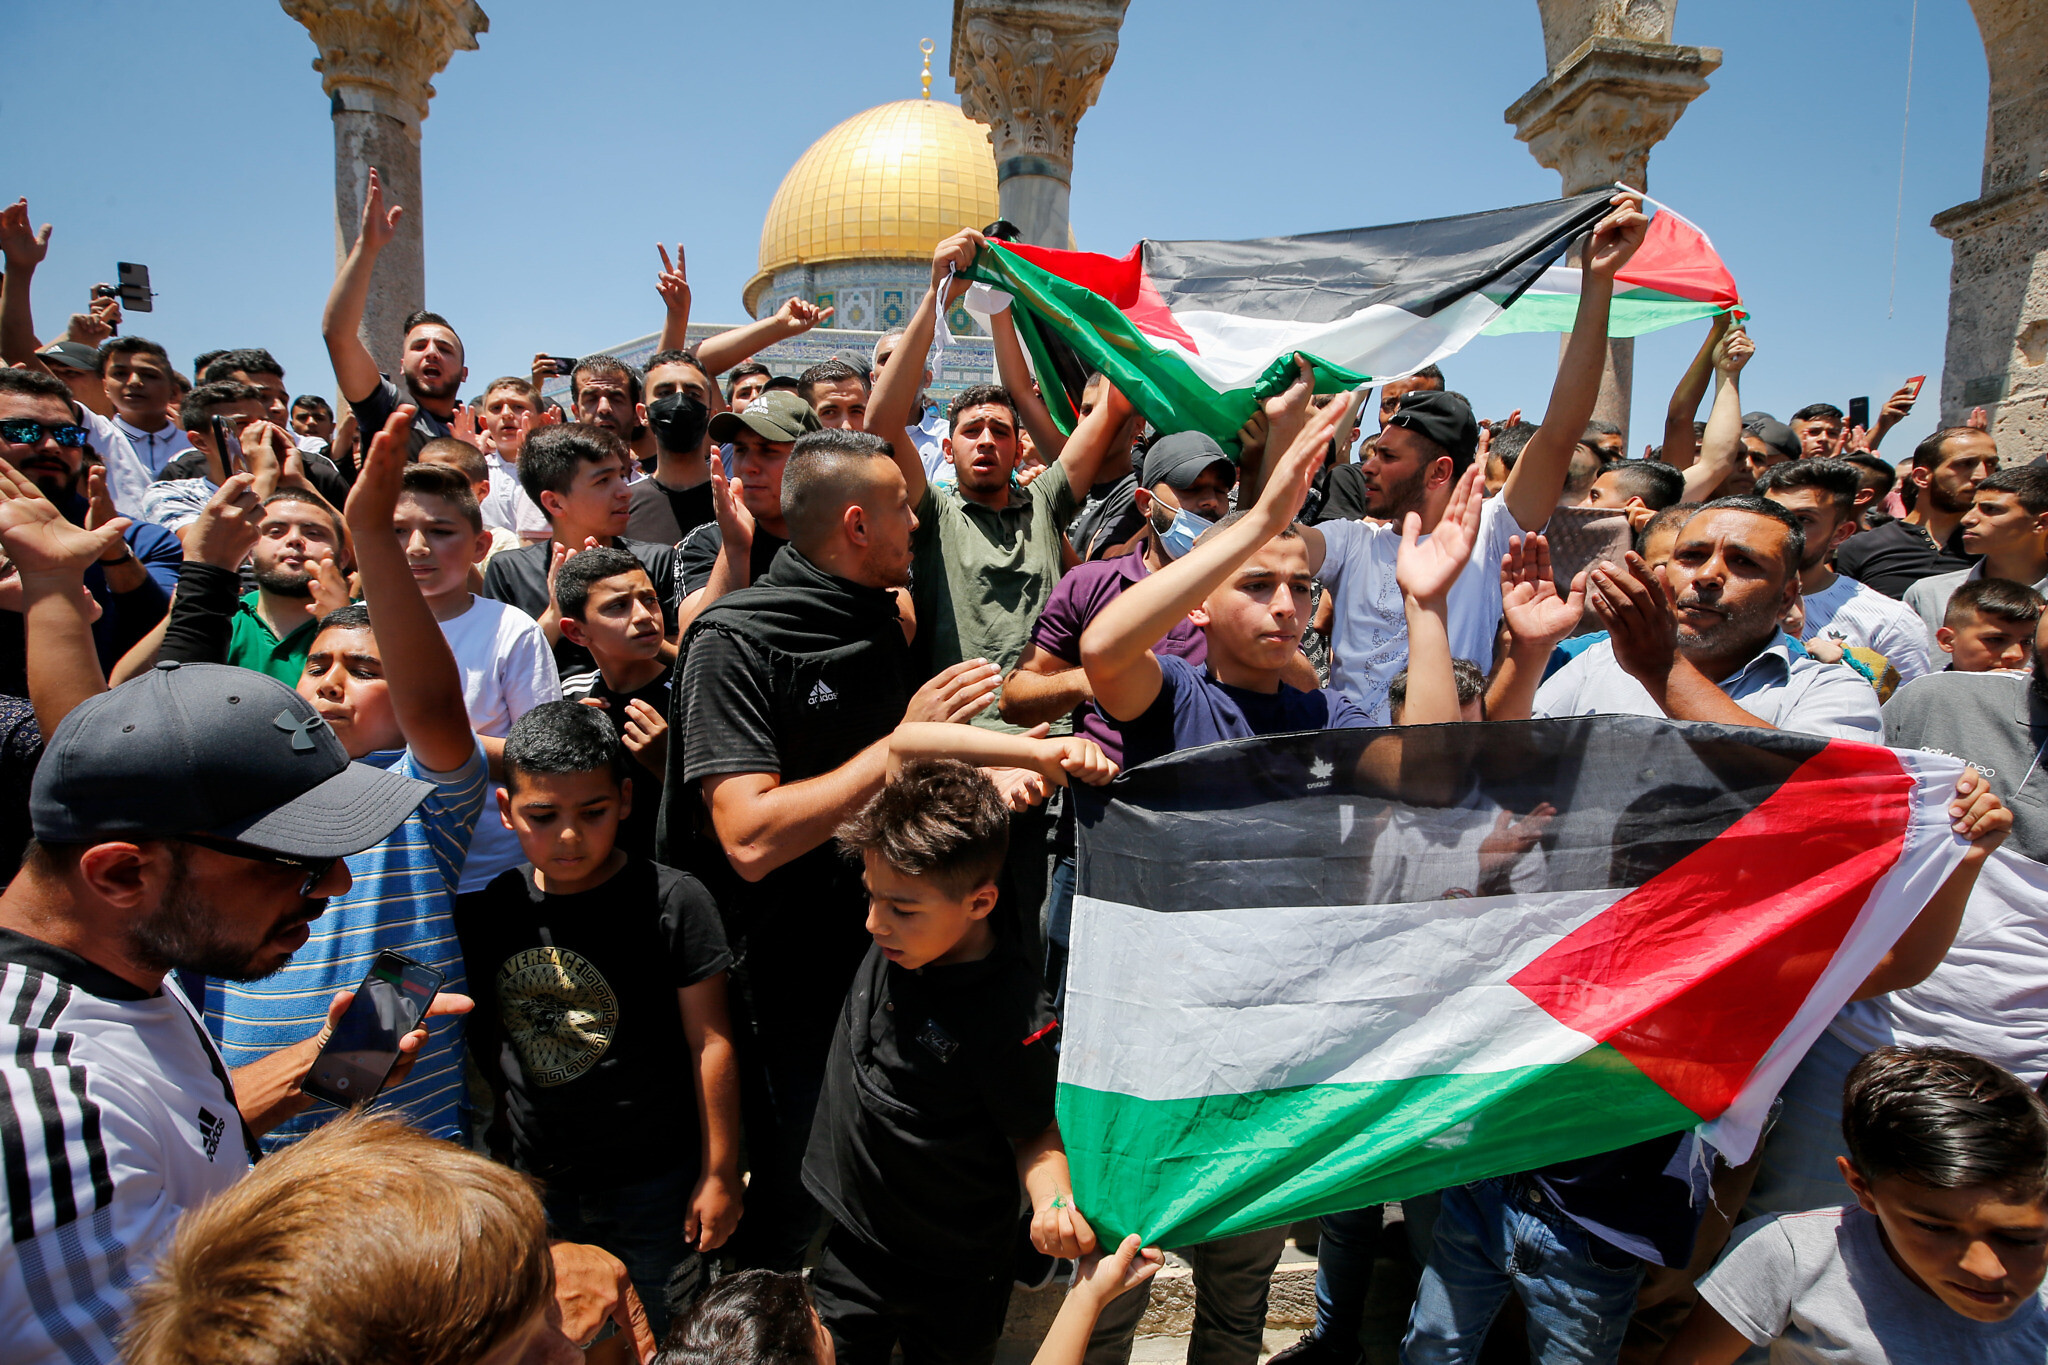 Worshippers raise the Palestinian flag at the Al Aqsa mosque compound in Jerusalem's Old City